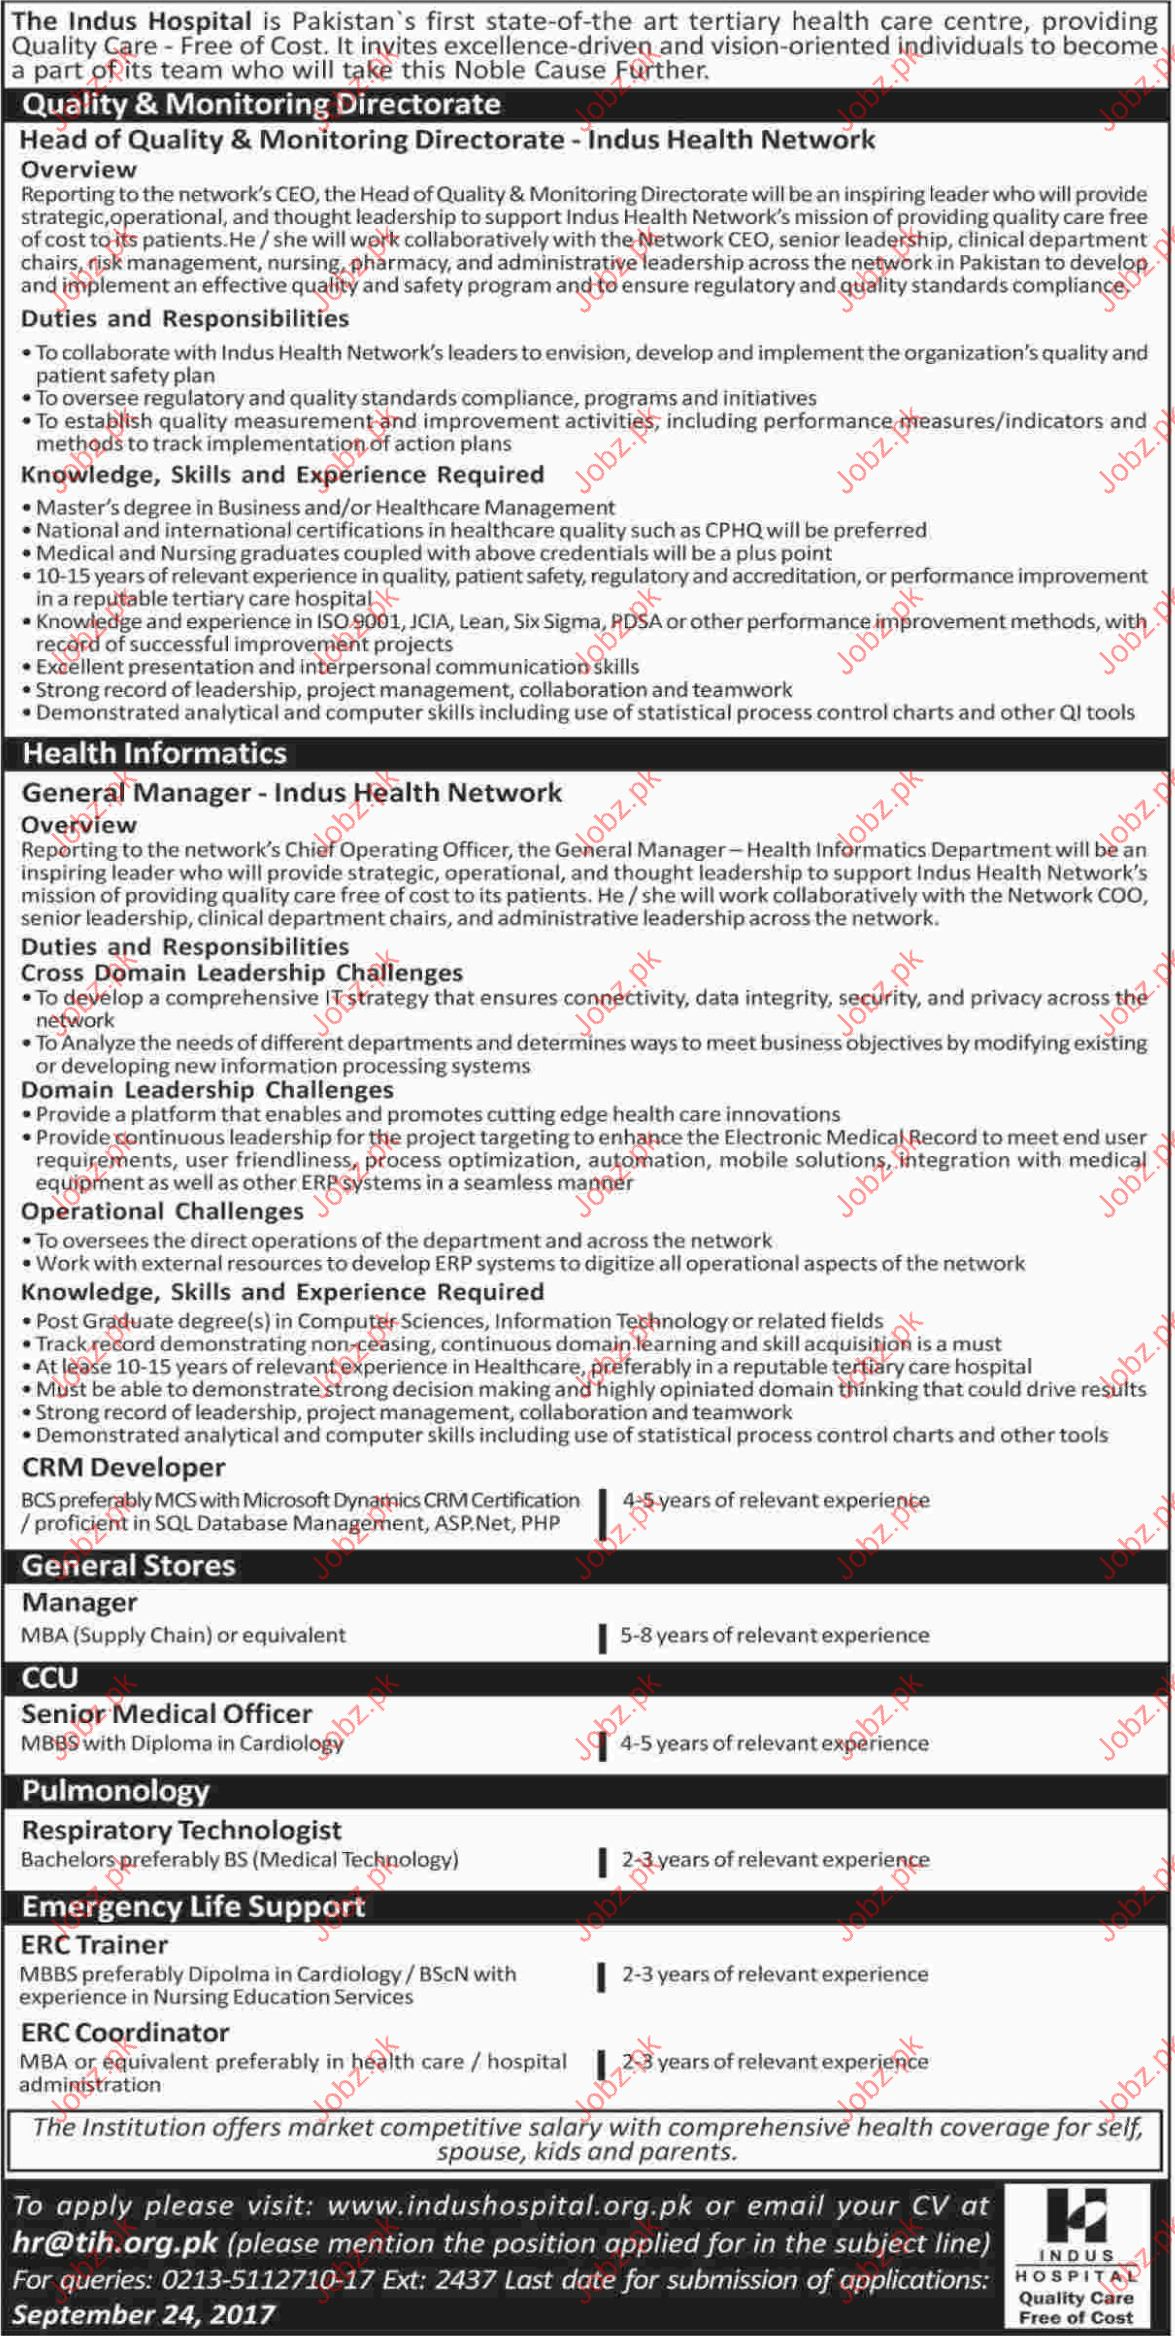 Jobs Oppotunity In The Indus Hospital